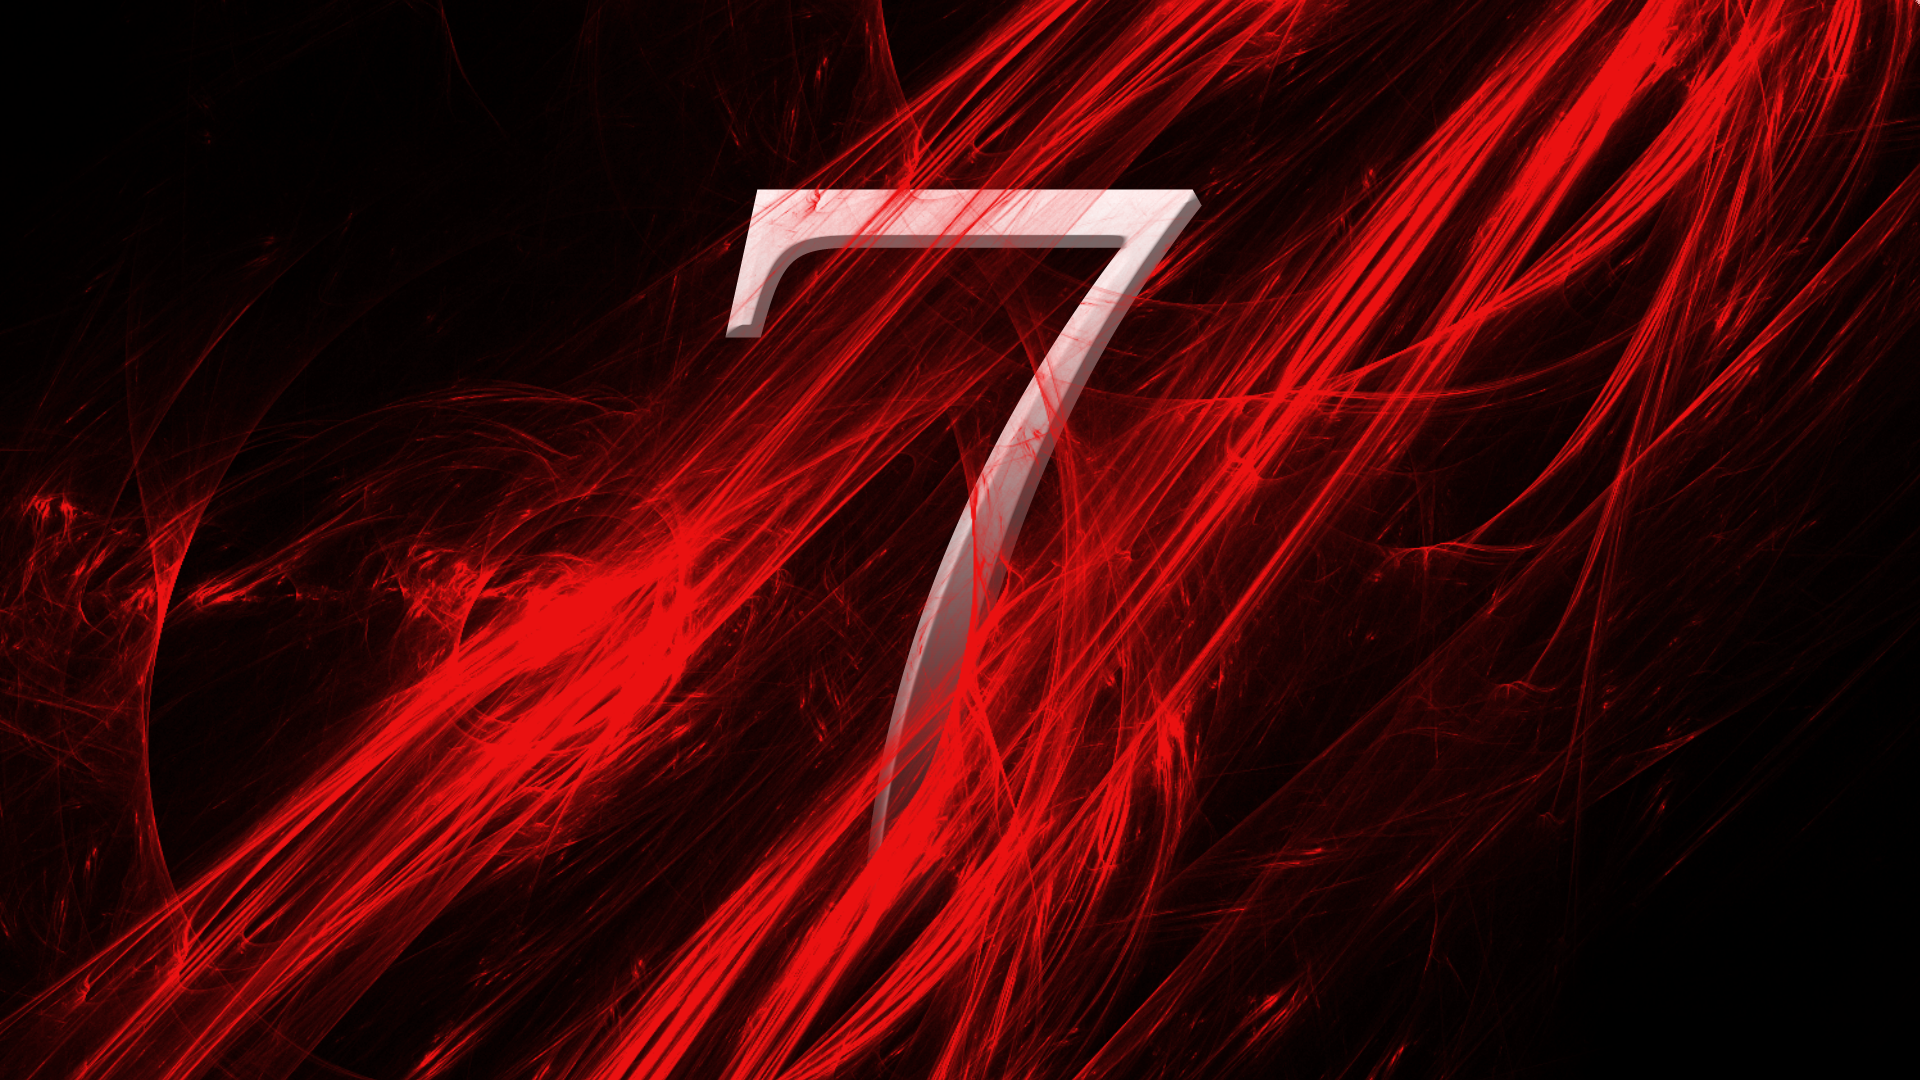 W3walls Com Number Wallpaper Red Wallpaper Red Images